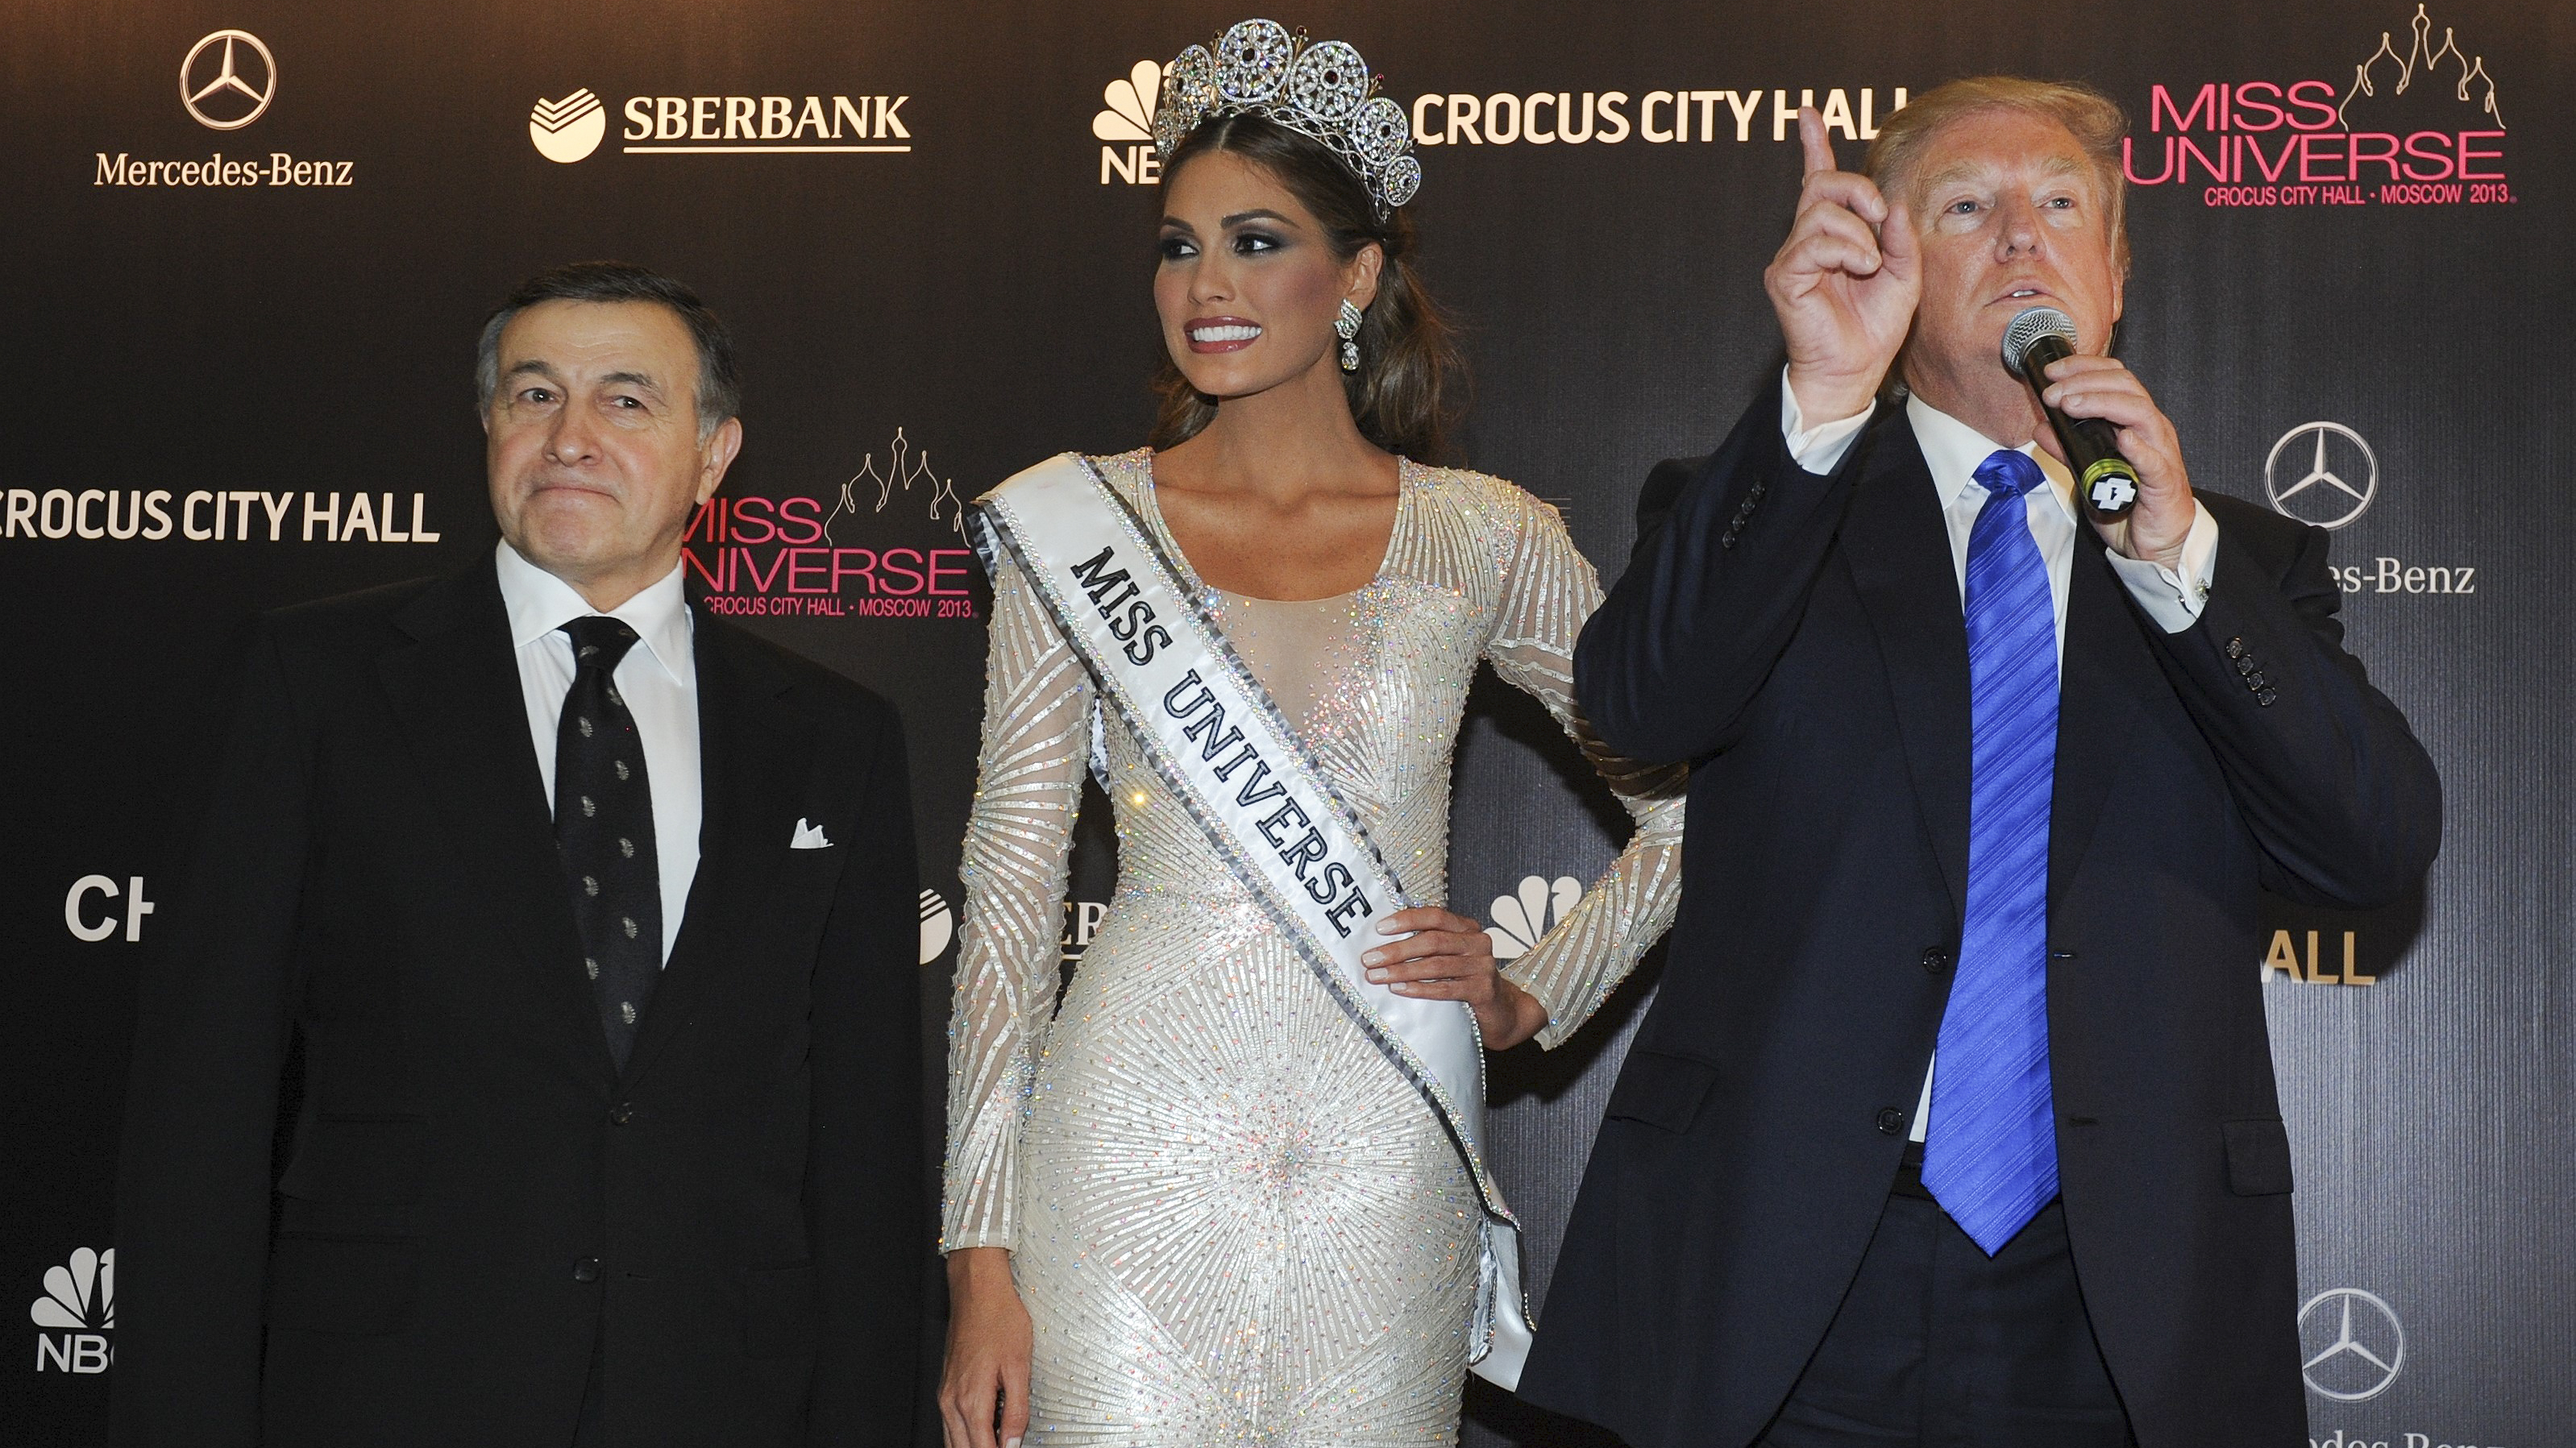 In this file photo taken on Sunday, Nov. 10, 2013, Russian businessman Aras Agalarov, left, Miss Universe 2013 Gabriela Isler, from Venezuela, center, and pageant owner Donald Trump attend the final of the 2013 Miss Universe pageant in Moscow, Russia.